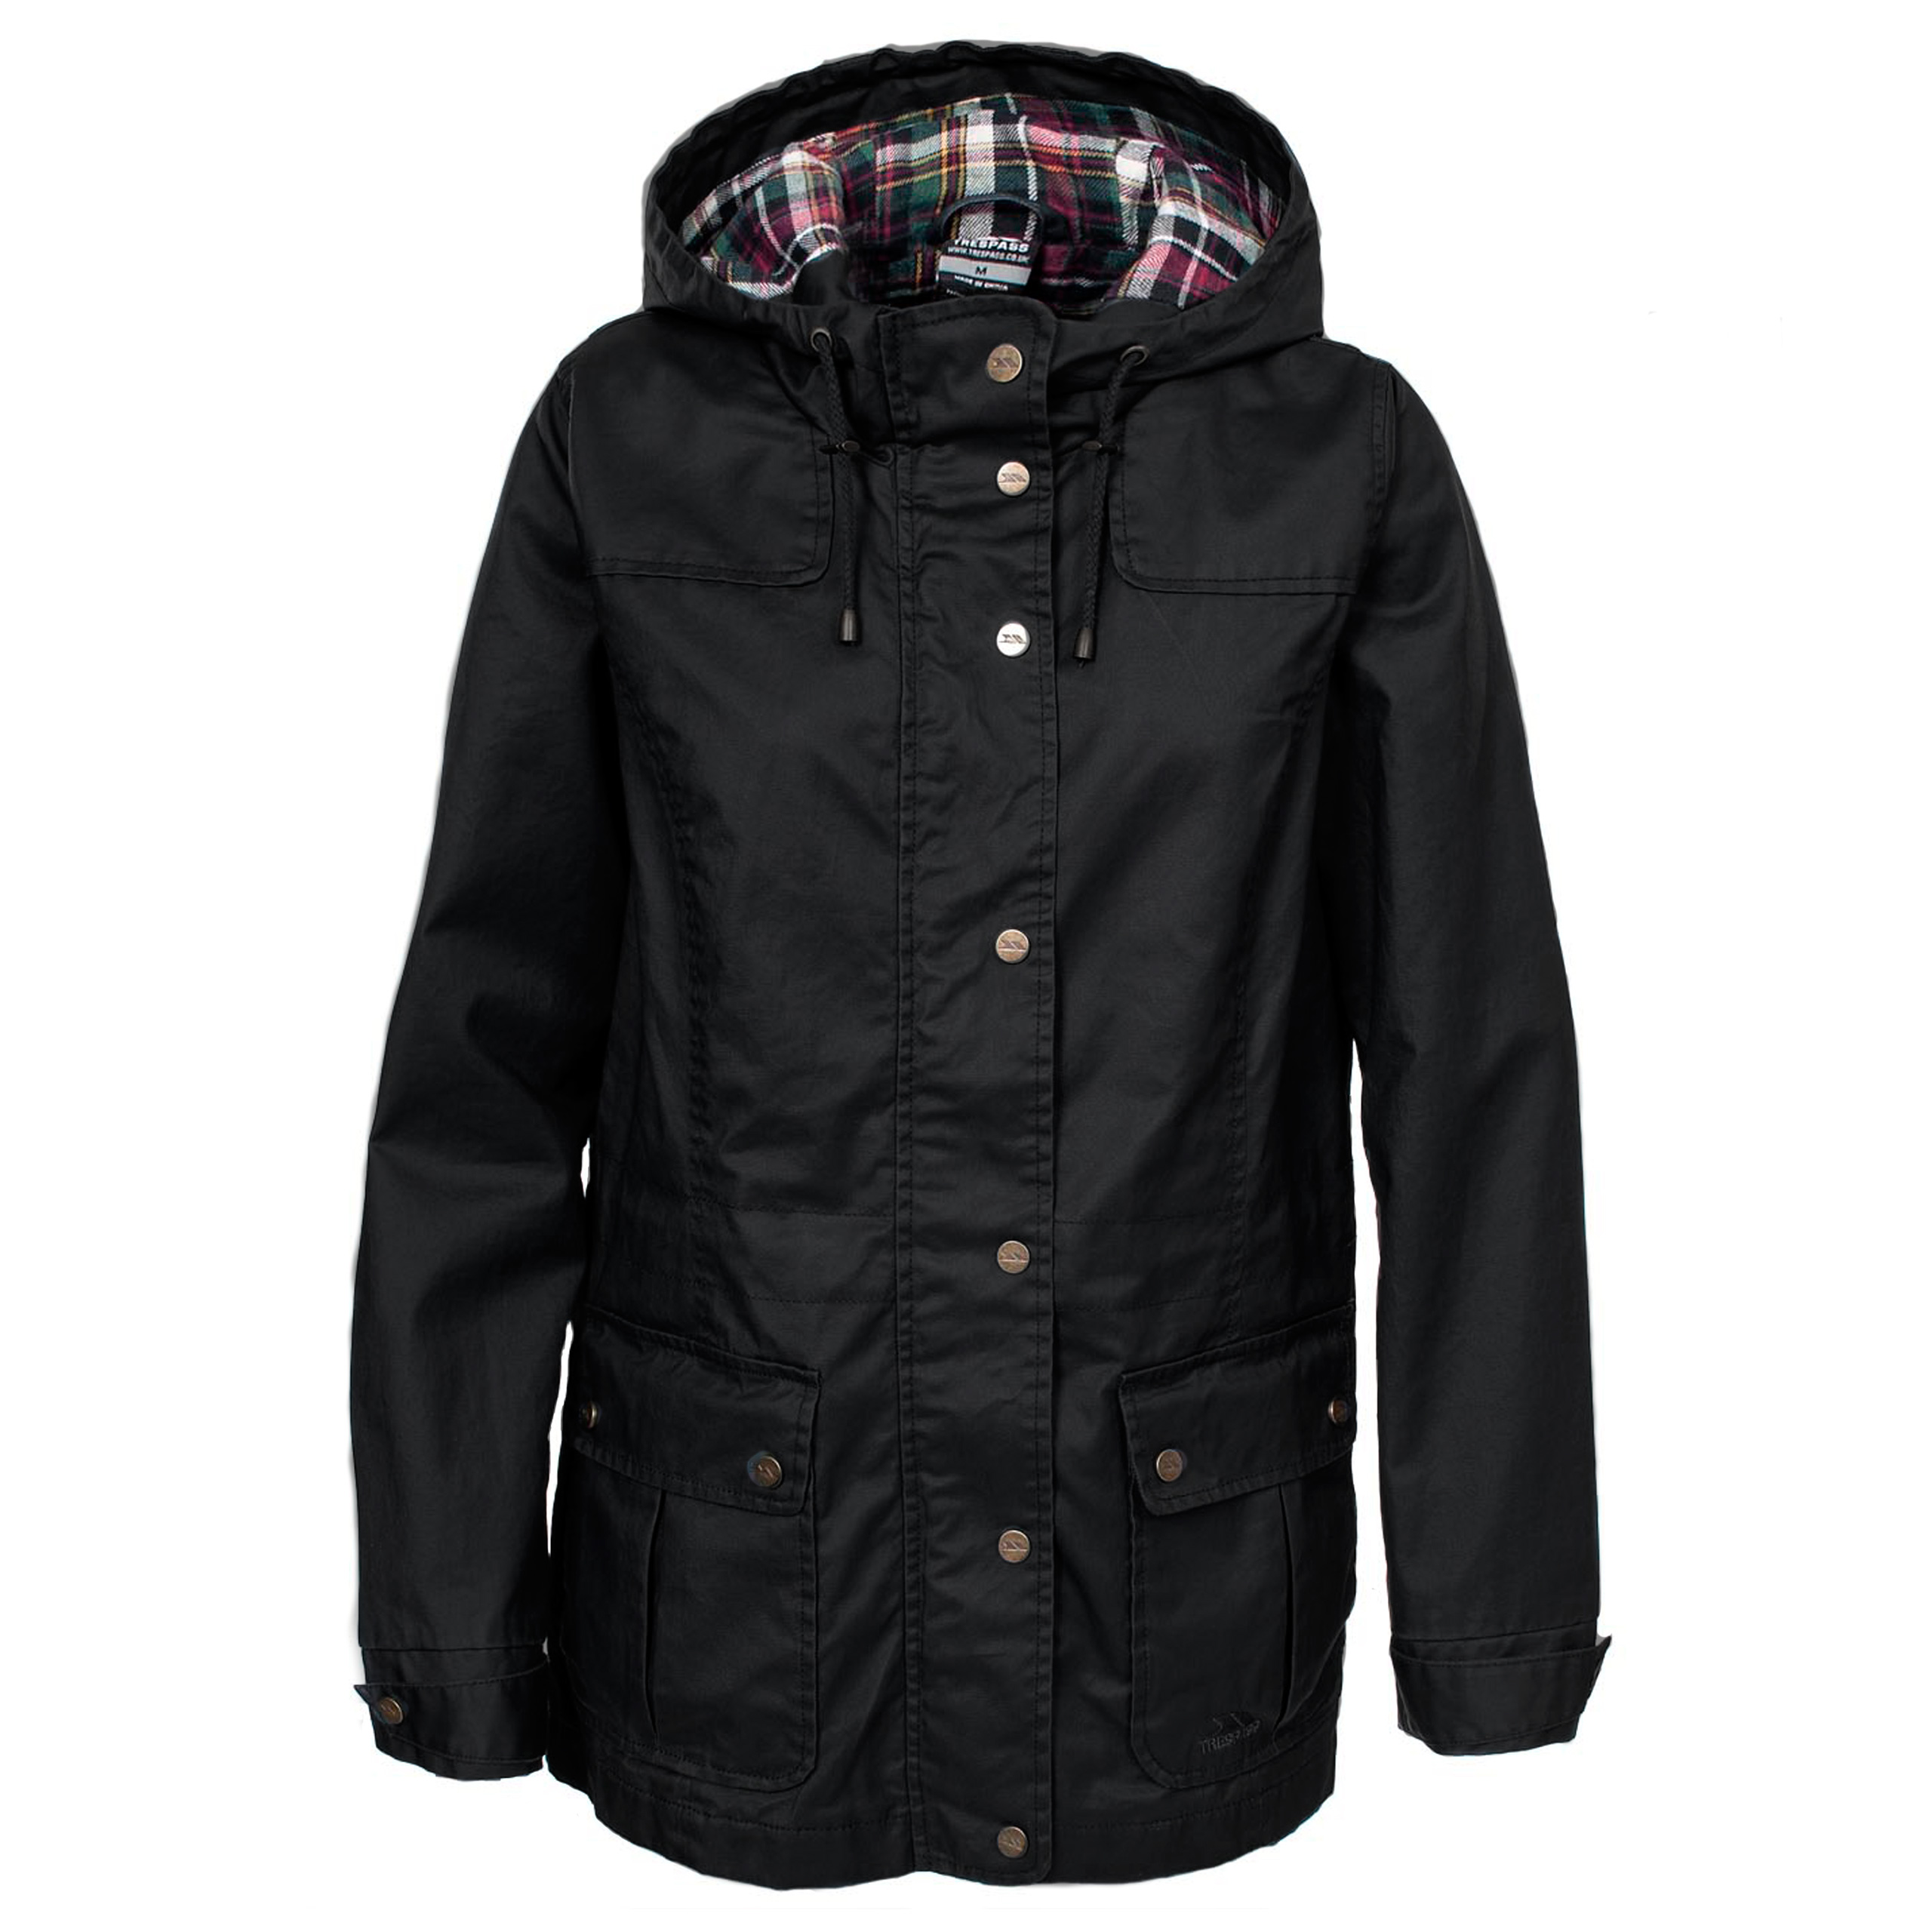 Free shipping on Barbour outerwear for women and men at 10mins.ml Shop for coats, jackets and vests. Totally free shipping and returns. Storied British brand Barbour has been making classic waxed jackets by hand for over a century. Barbour x Liberty Blaise Hooded Waxed Jacket (Nordstrom Exclusive) $ Barbour 'Classic Beaufort.